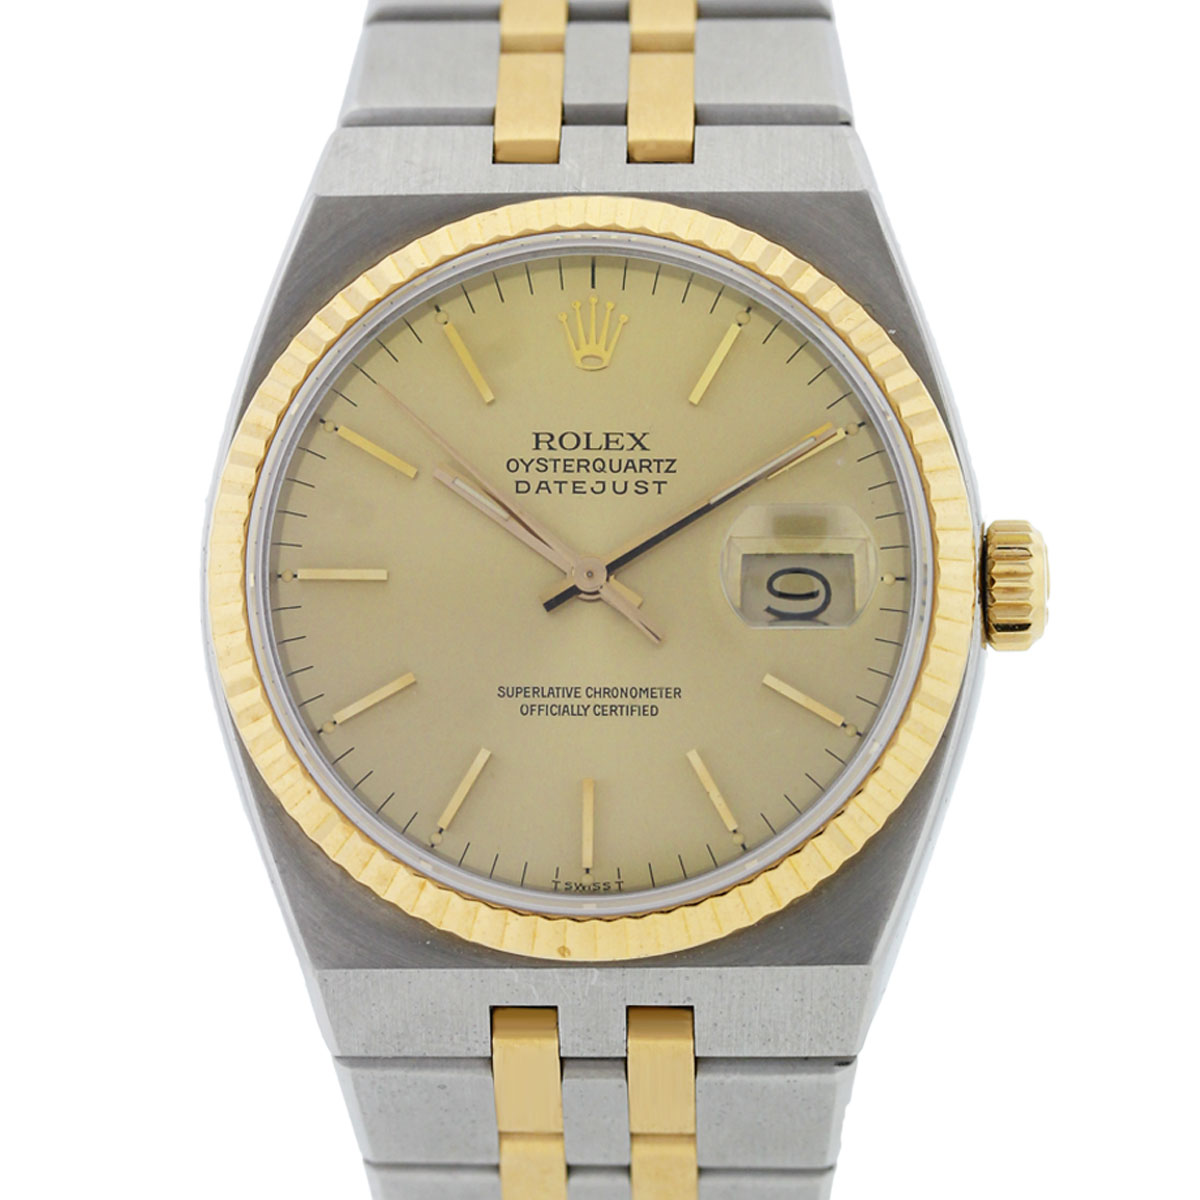 You are viewing this Rolex 17013 Two Tone Oysterquartz Datejust Watch!